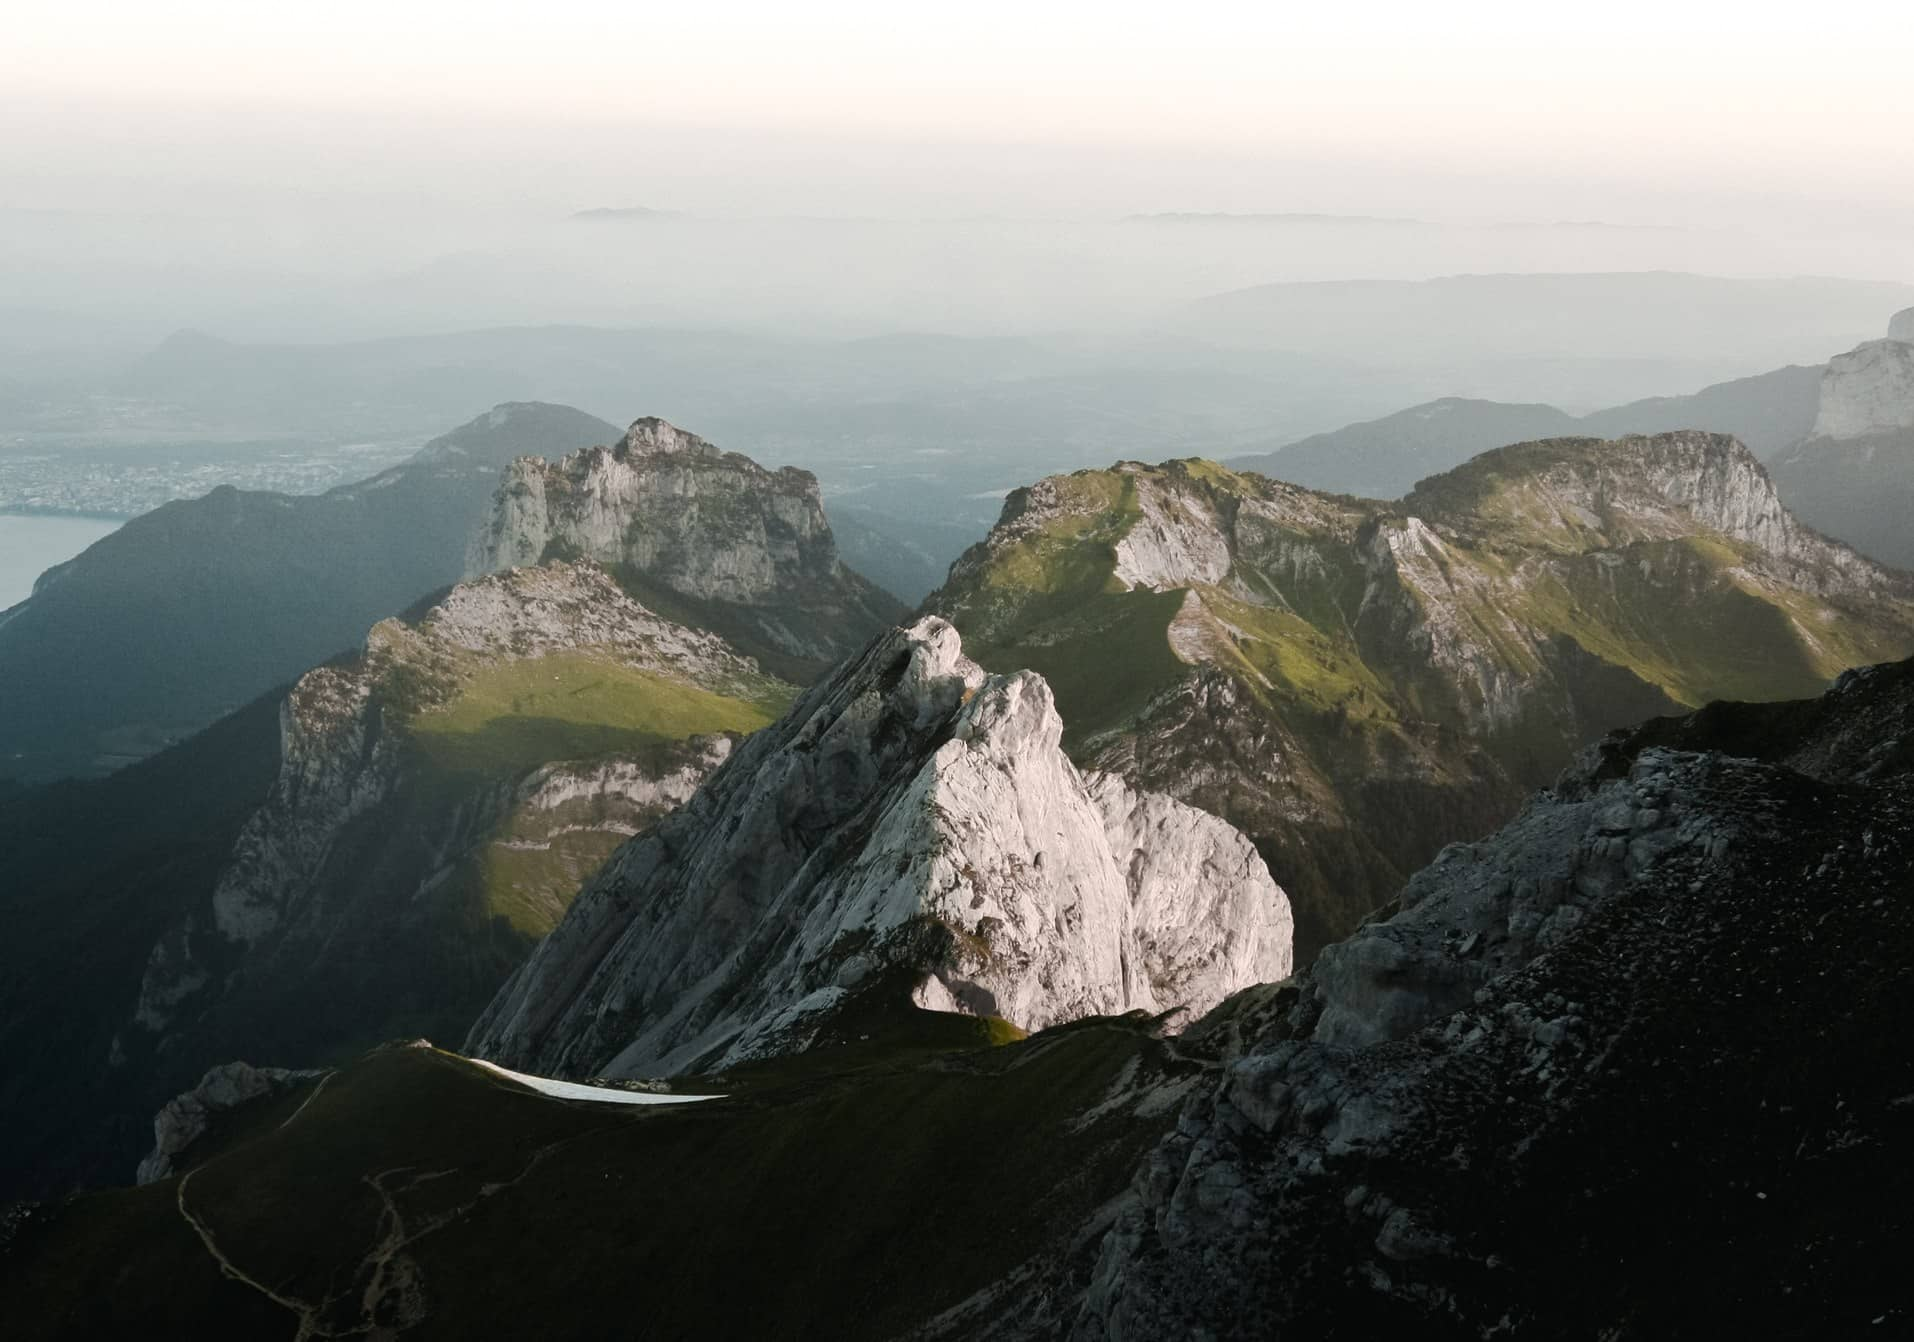 Massif montagneux proche d'Annecy